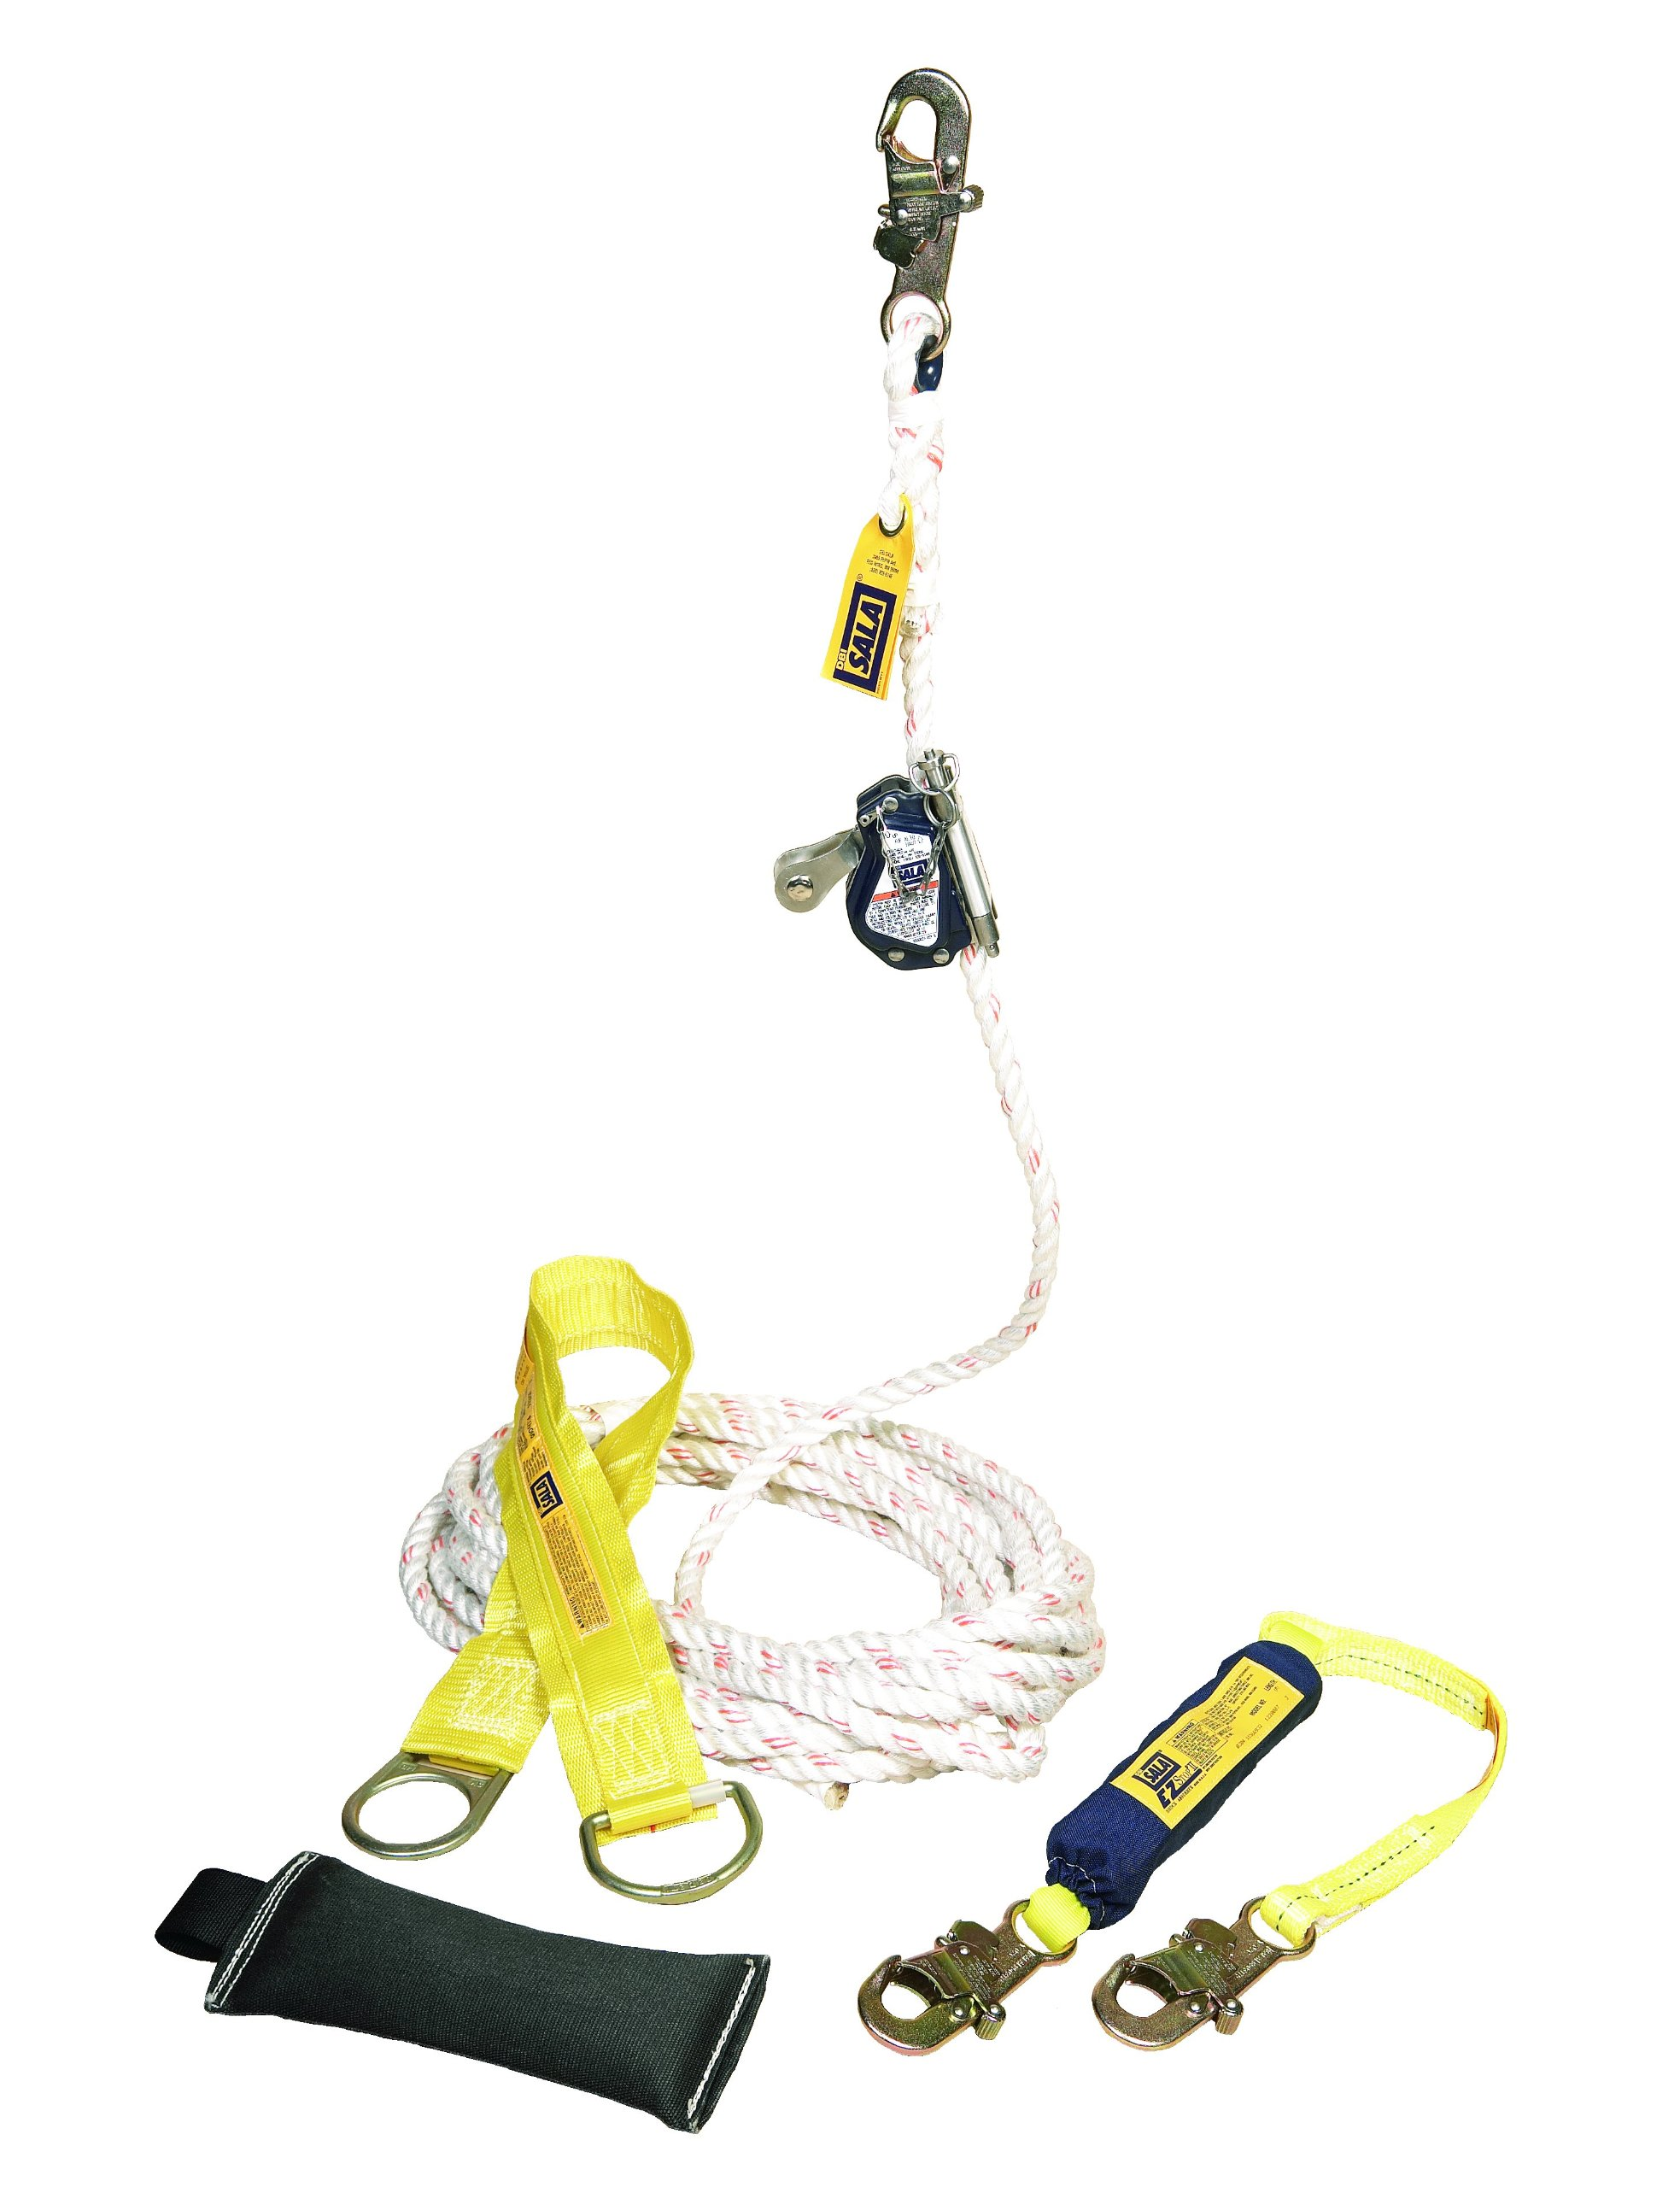 3M DBI-SALA Lad-Saf 5000400 Mobile Rope Grab Kit, Rope Grab, 3' Shock Absorbing Lanyard, 50' Rope Lifeline, Counterweight, Tie-Off Adaptor, and Carrying Bag by 3M Personal Protective Equipment